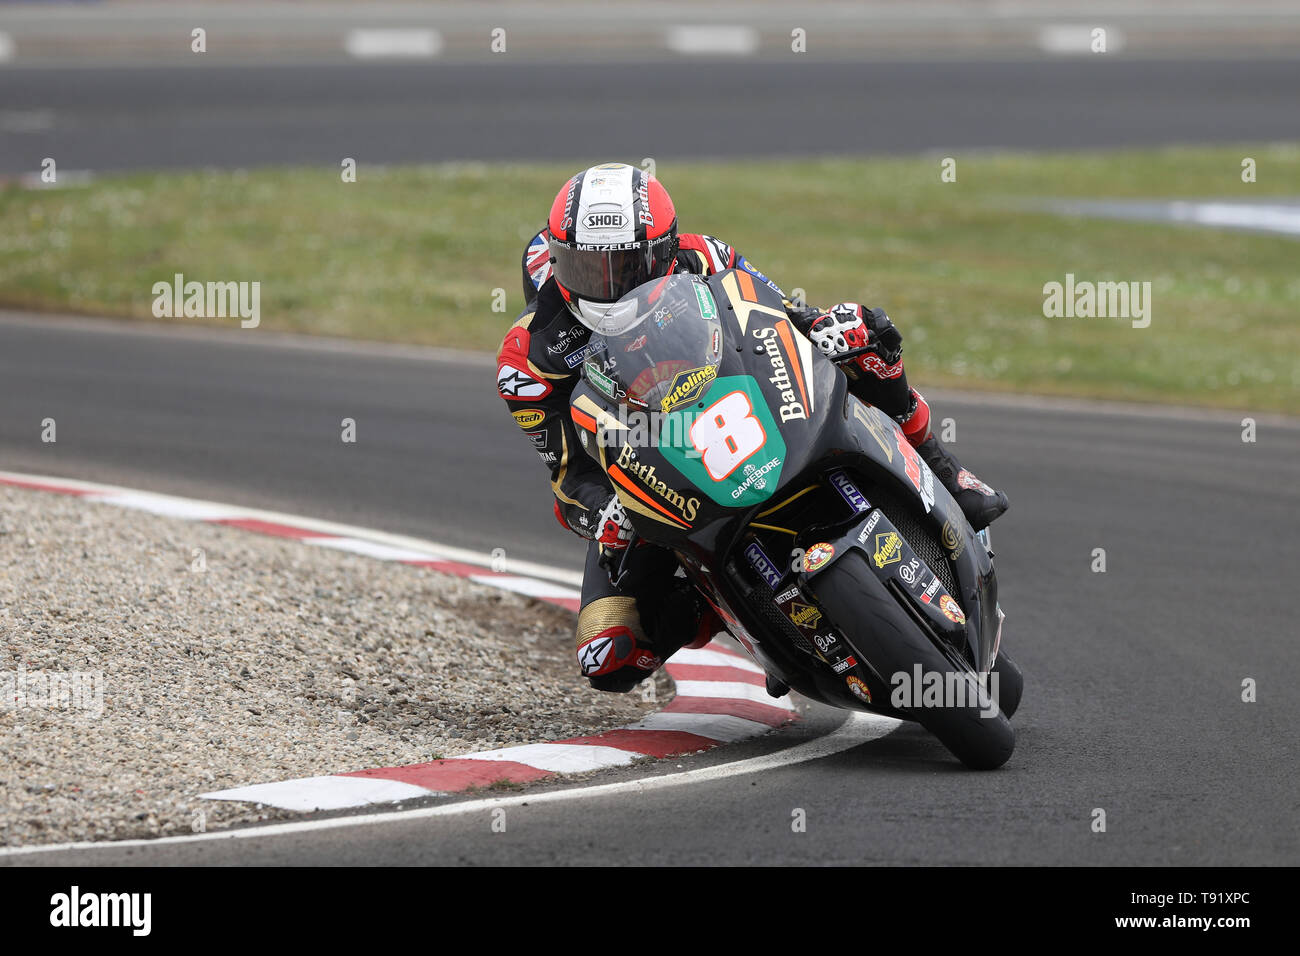 Portrush, Northern Ireland. 16th May, 2019. International North West 200 Motorcycle road racing, Thursday practice and evening racing; Michael Rutter on the Bathams Racing Kawasaki during the SuperTwins qualifying session Credit: Action Plus Sports/Alamy Live News - Stock Image